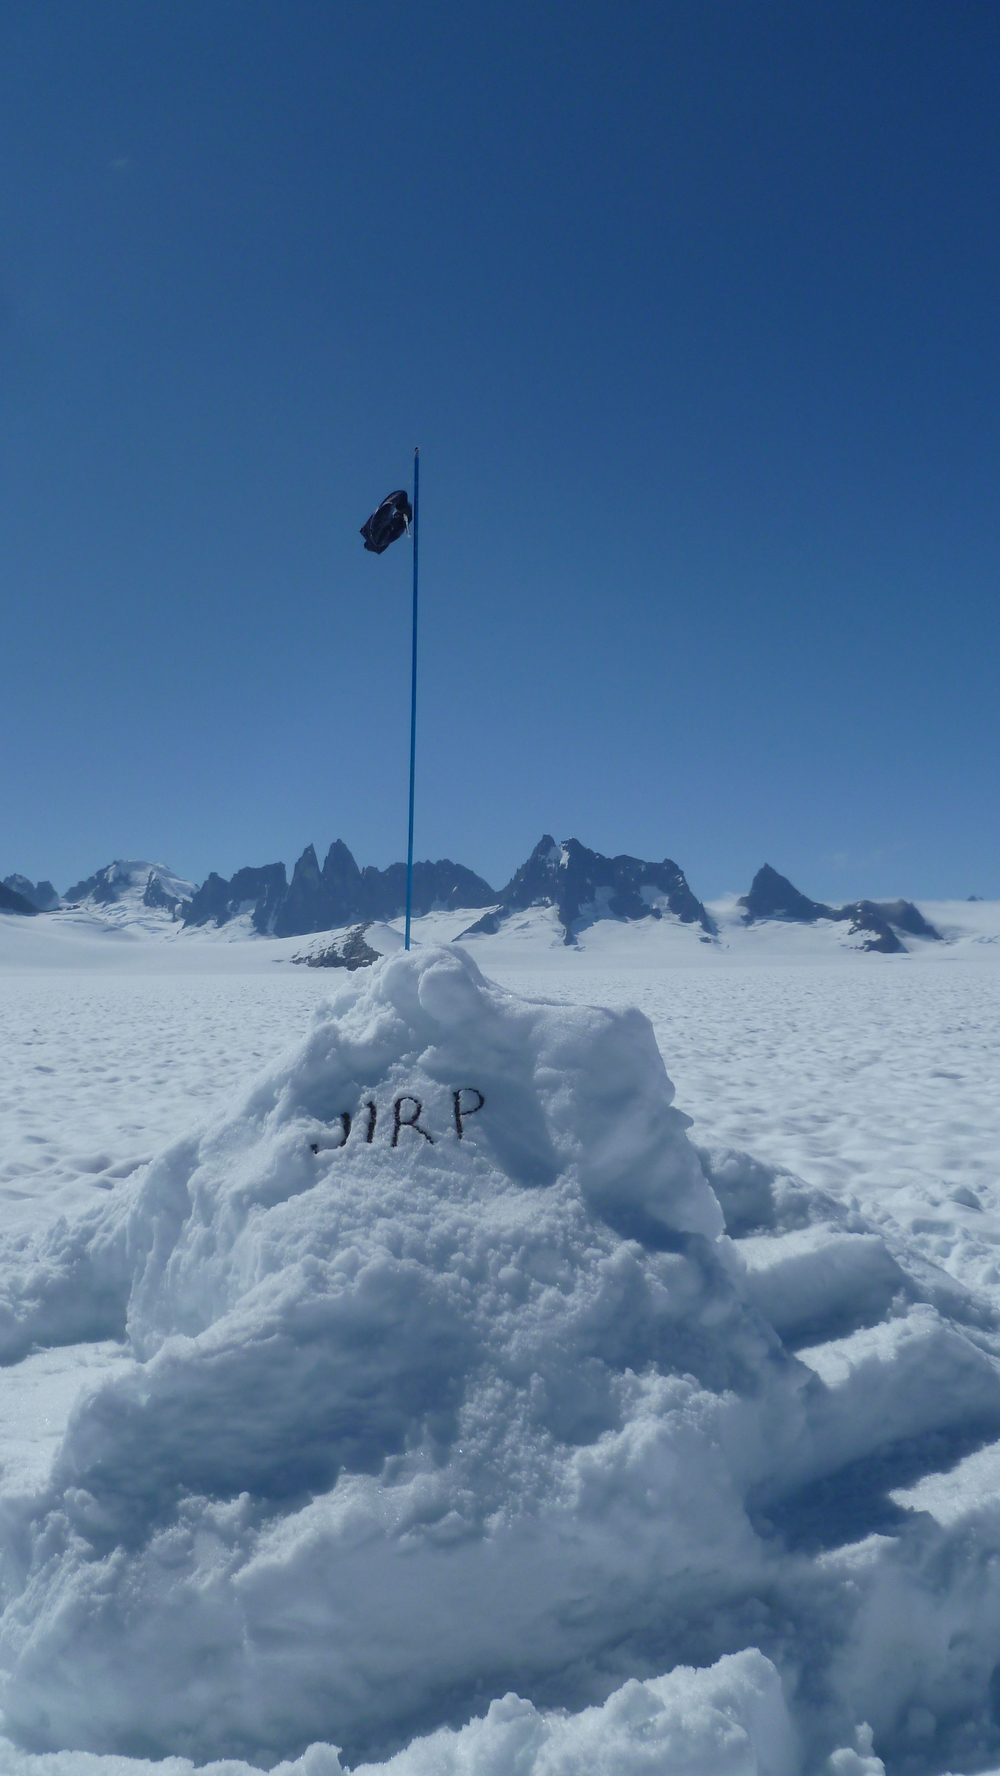 The JIRP mass balance snow throne.  photo by Danielle B.